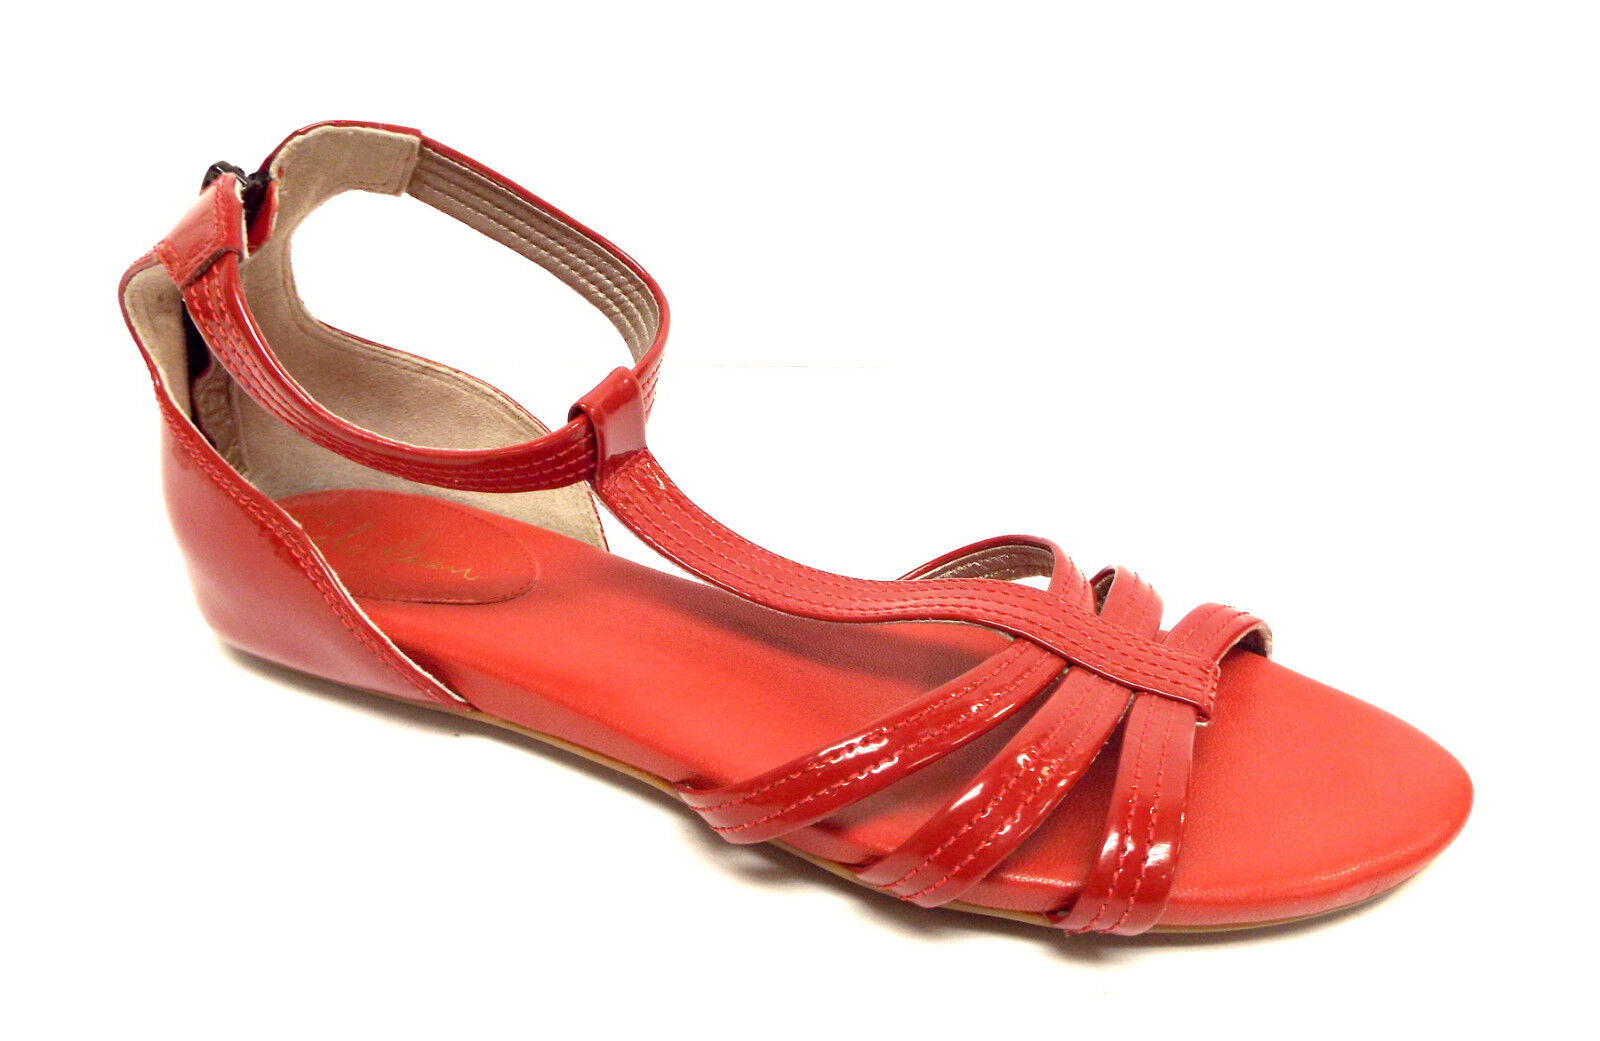 New COLE HAAN Size 9.5 Red Patent Ankle Strap Back Zip Sandals shoes 9 1 2